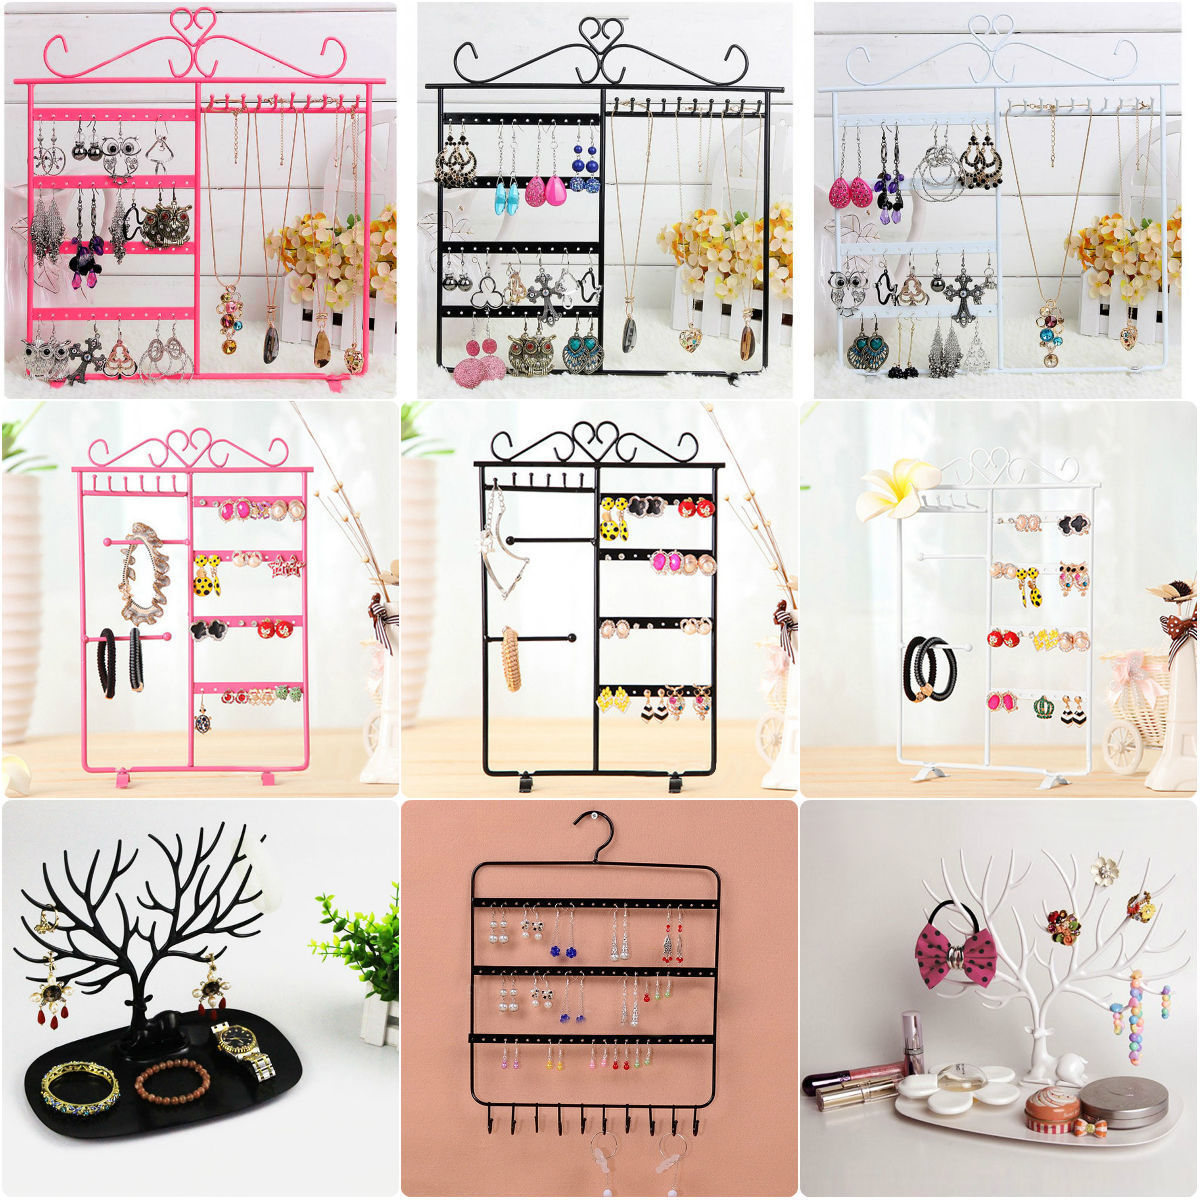 Earrings Ear Studs Necklace Chain Jewelry Display Holder Stand Organizer Rack Earring Display Necklace Display